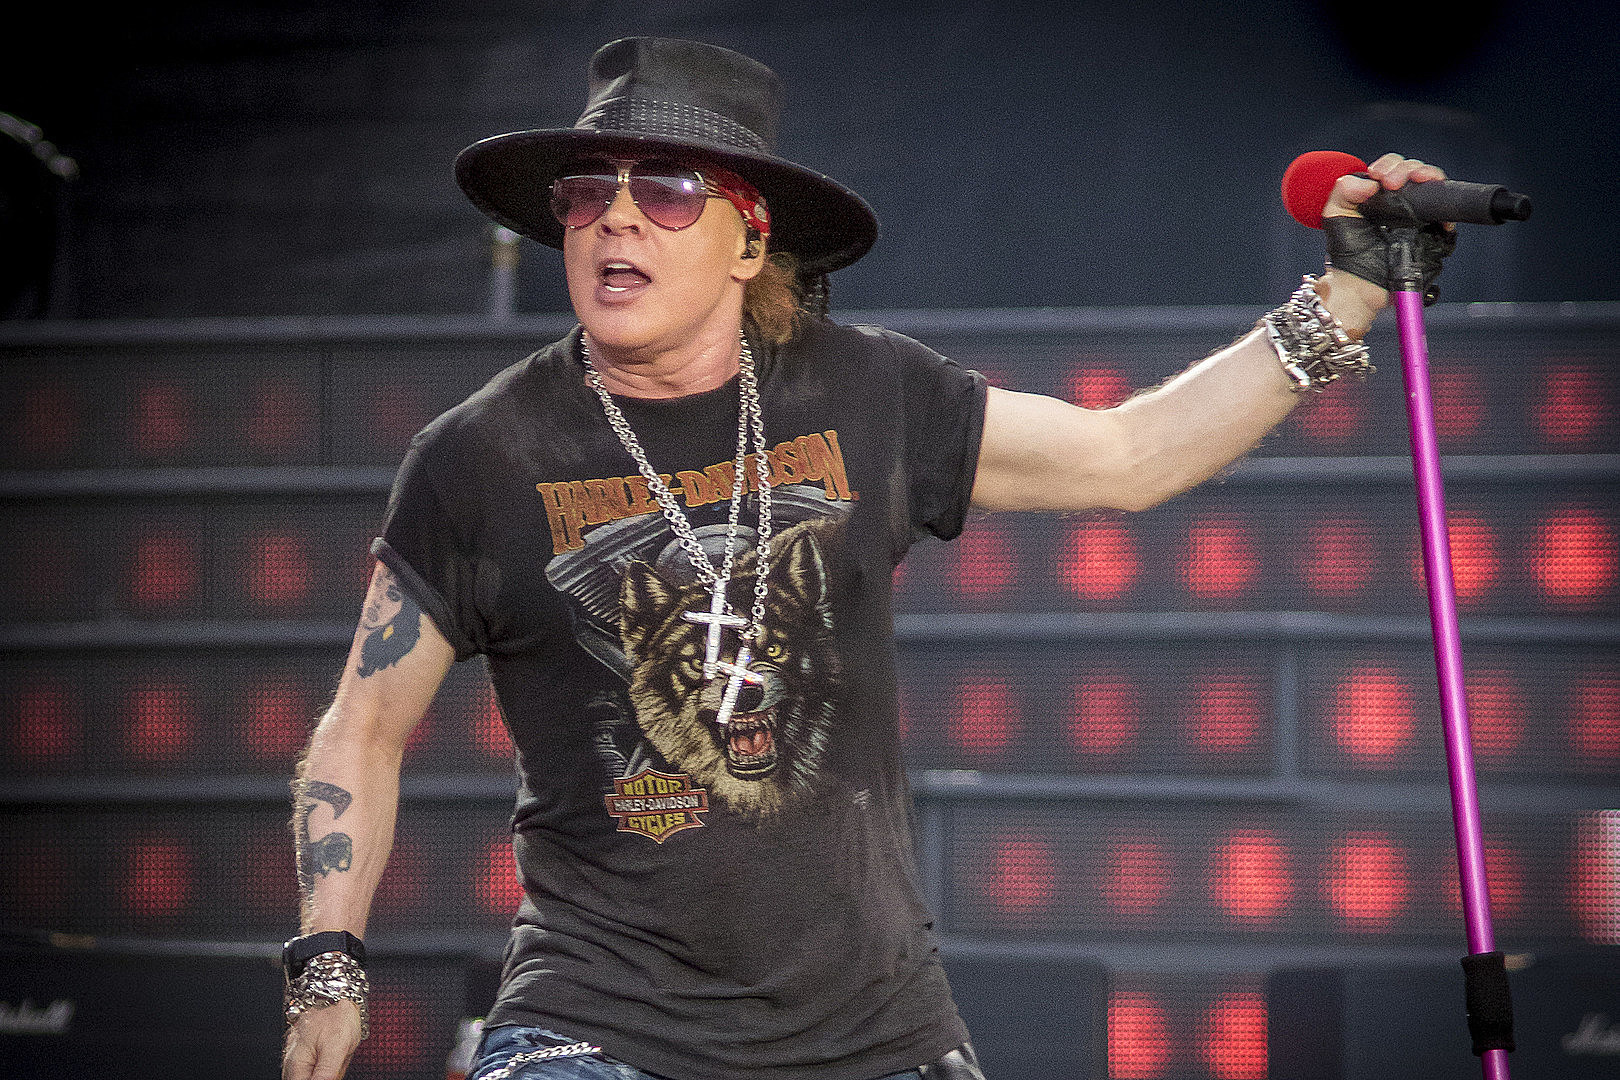 Axl Rose Has Message for Fans Following End of Guns N' Roses Tour